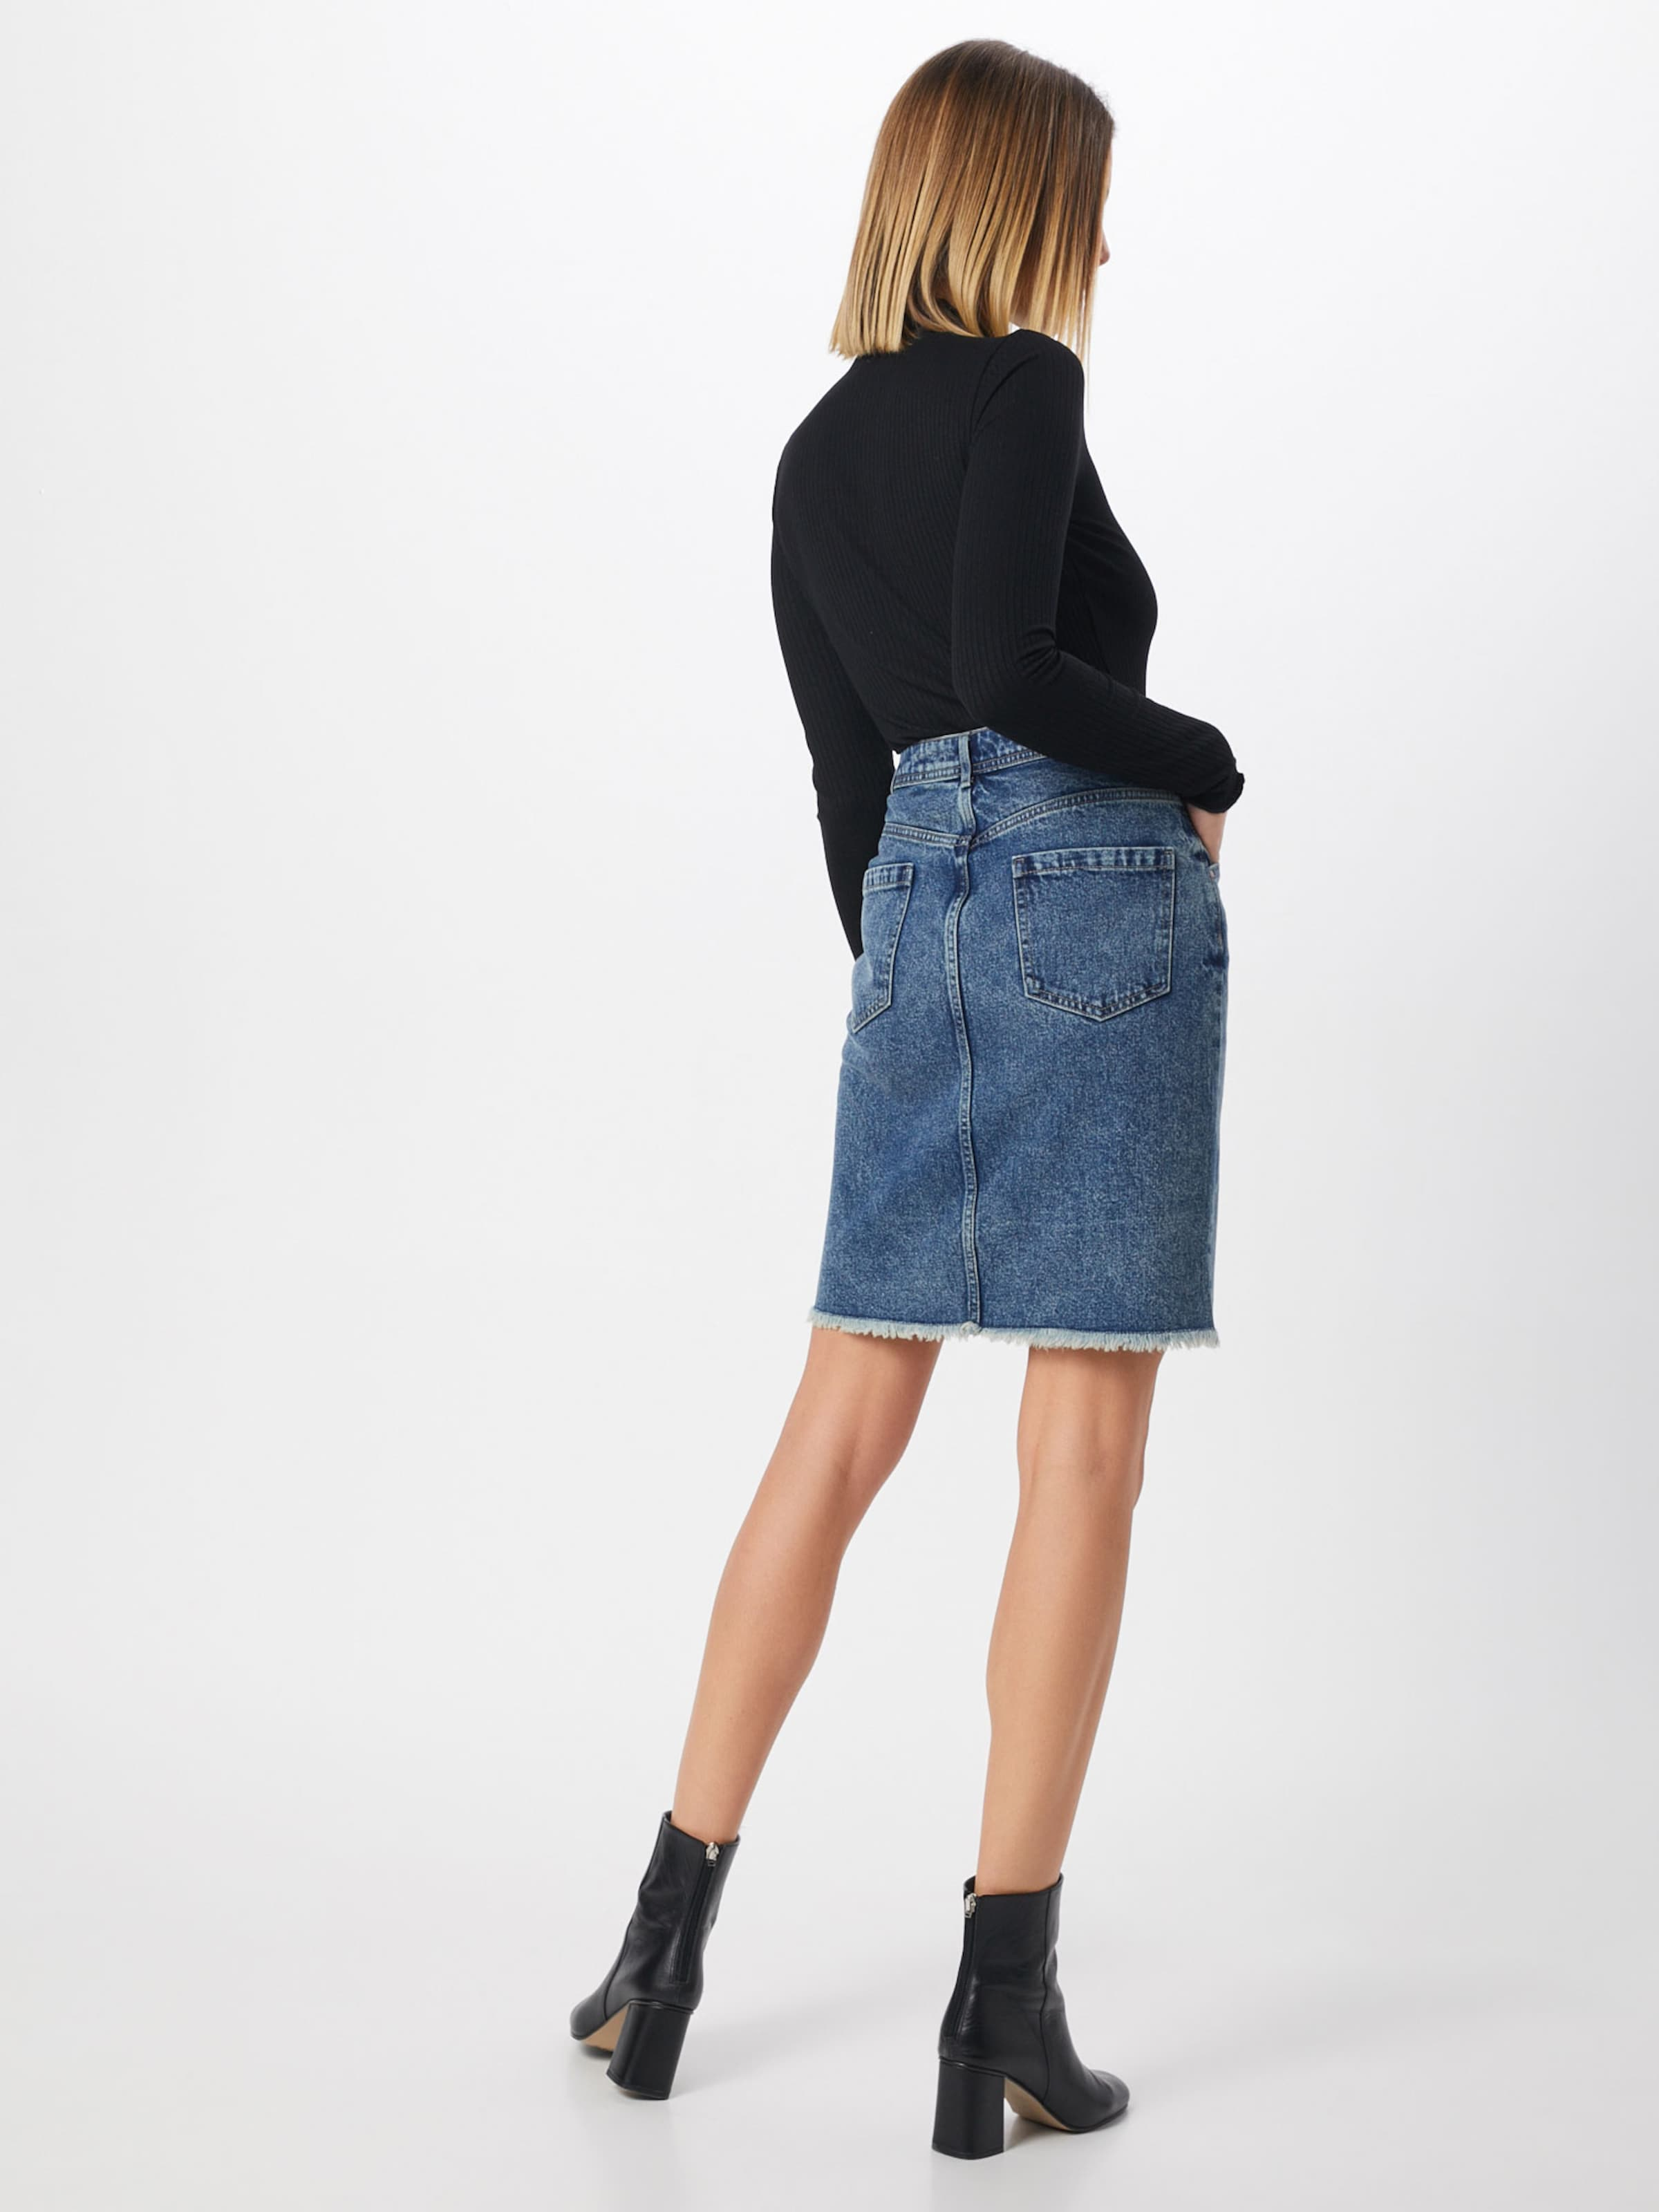 Pieces Denim Bleu 'cilla' Jupe En QWoCBrxde